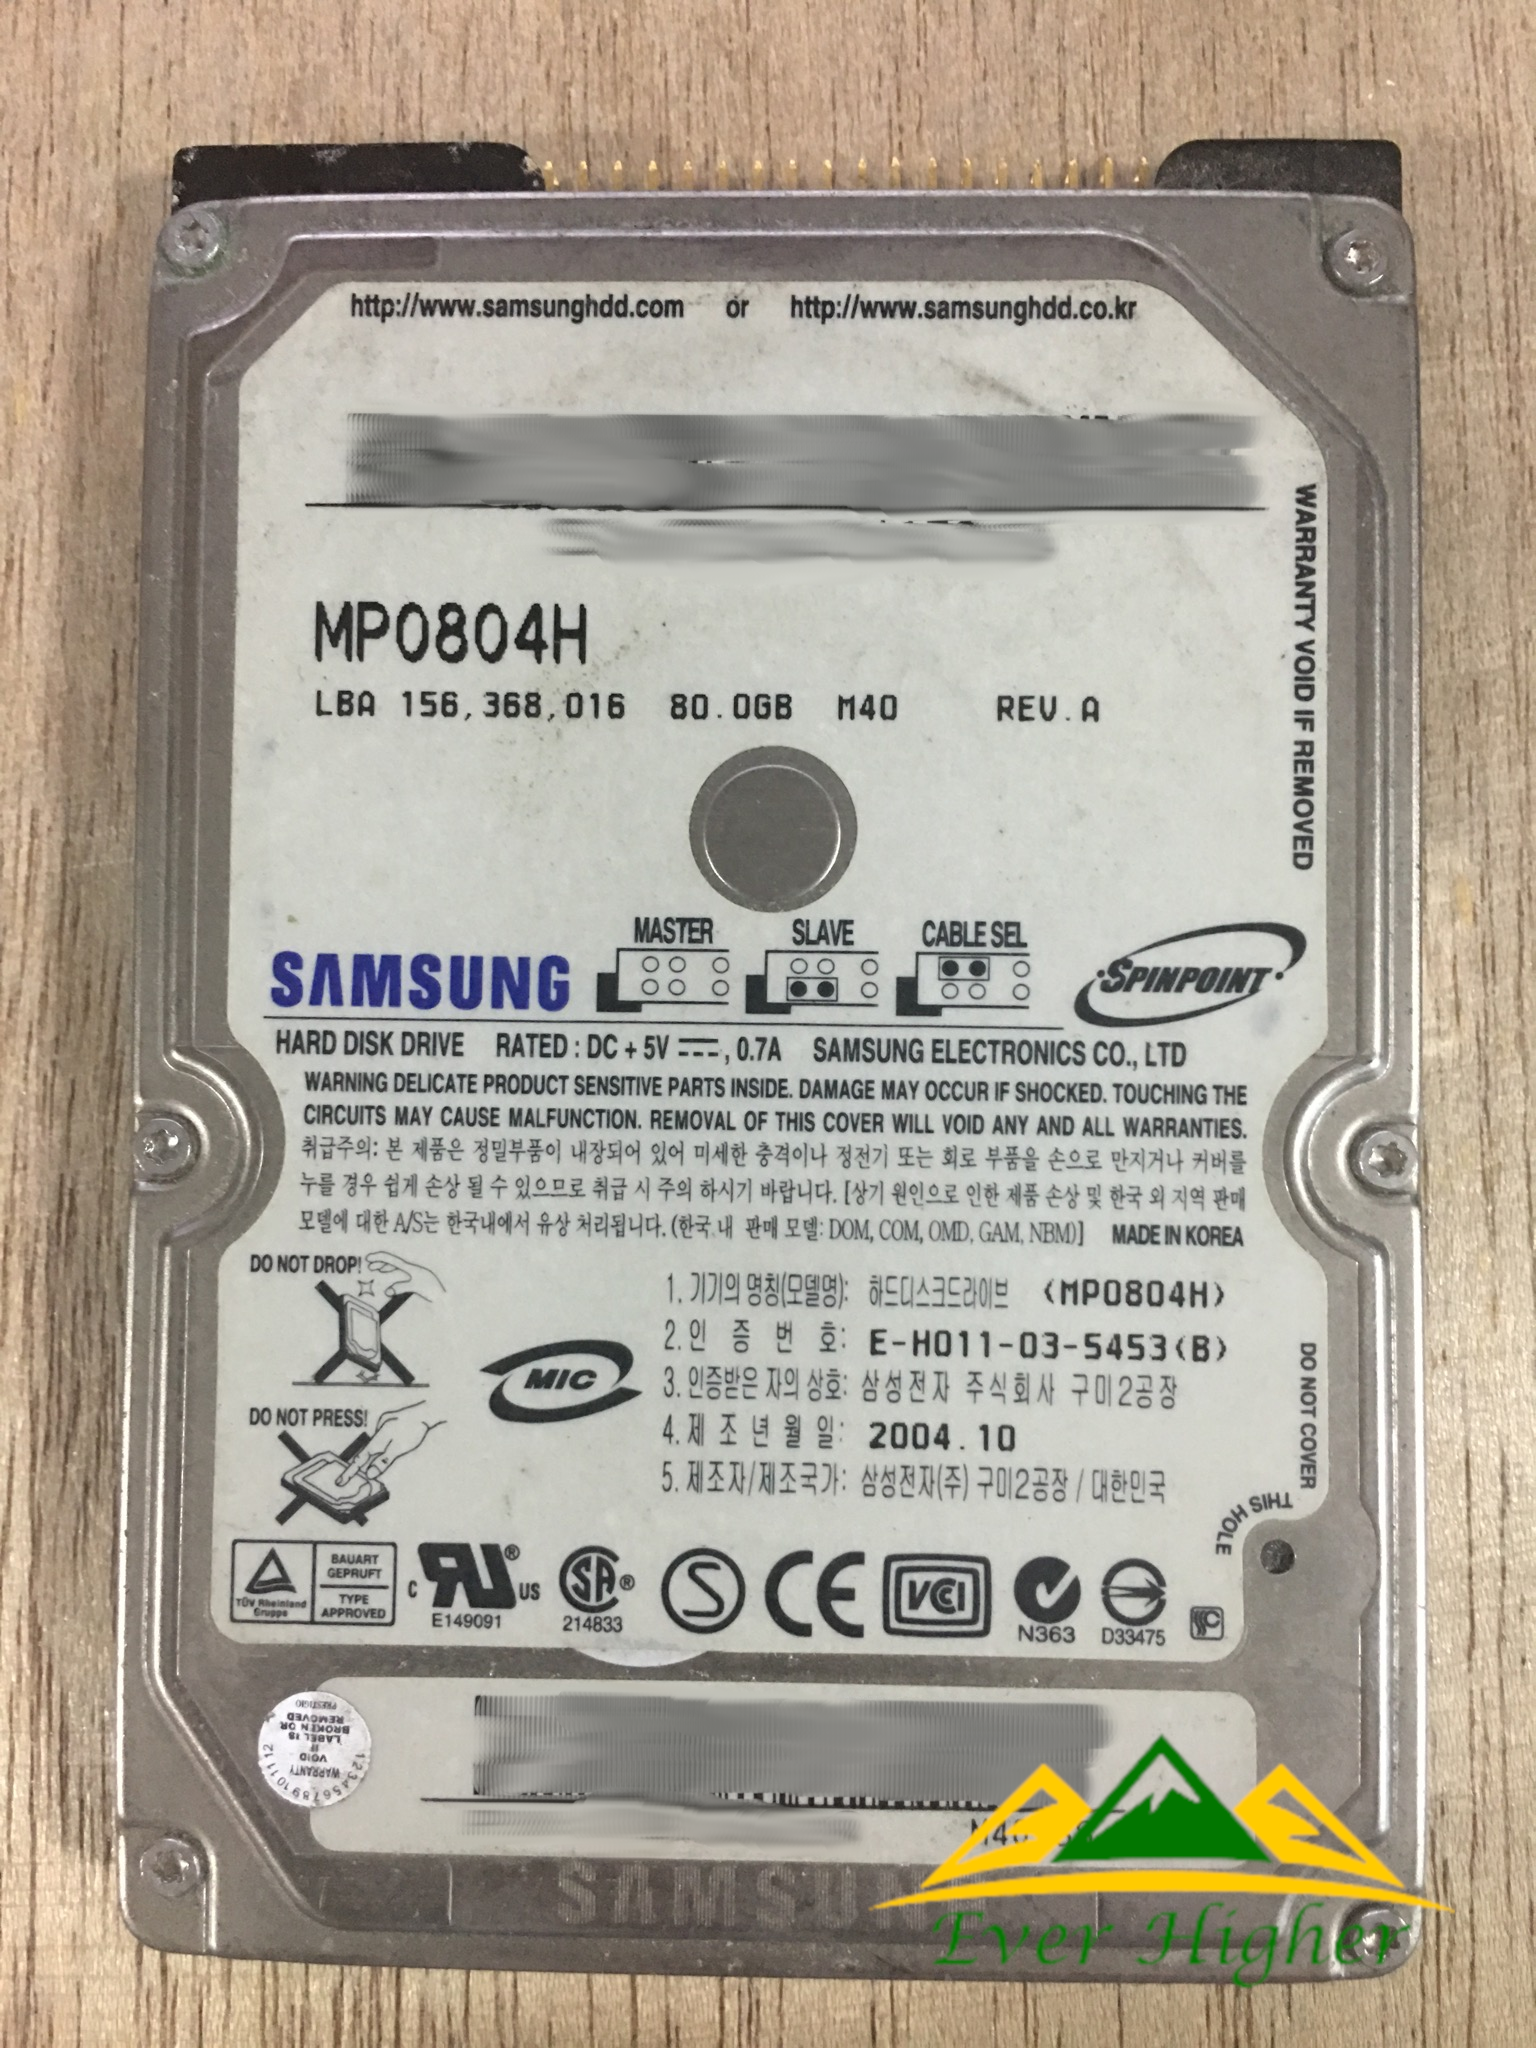 Samsung 2.5 hdd data recovery service in Singapore